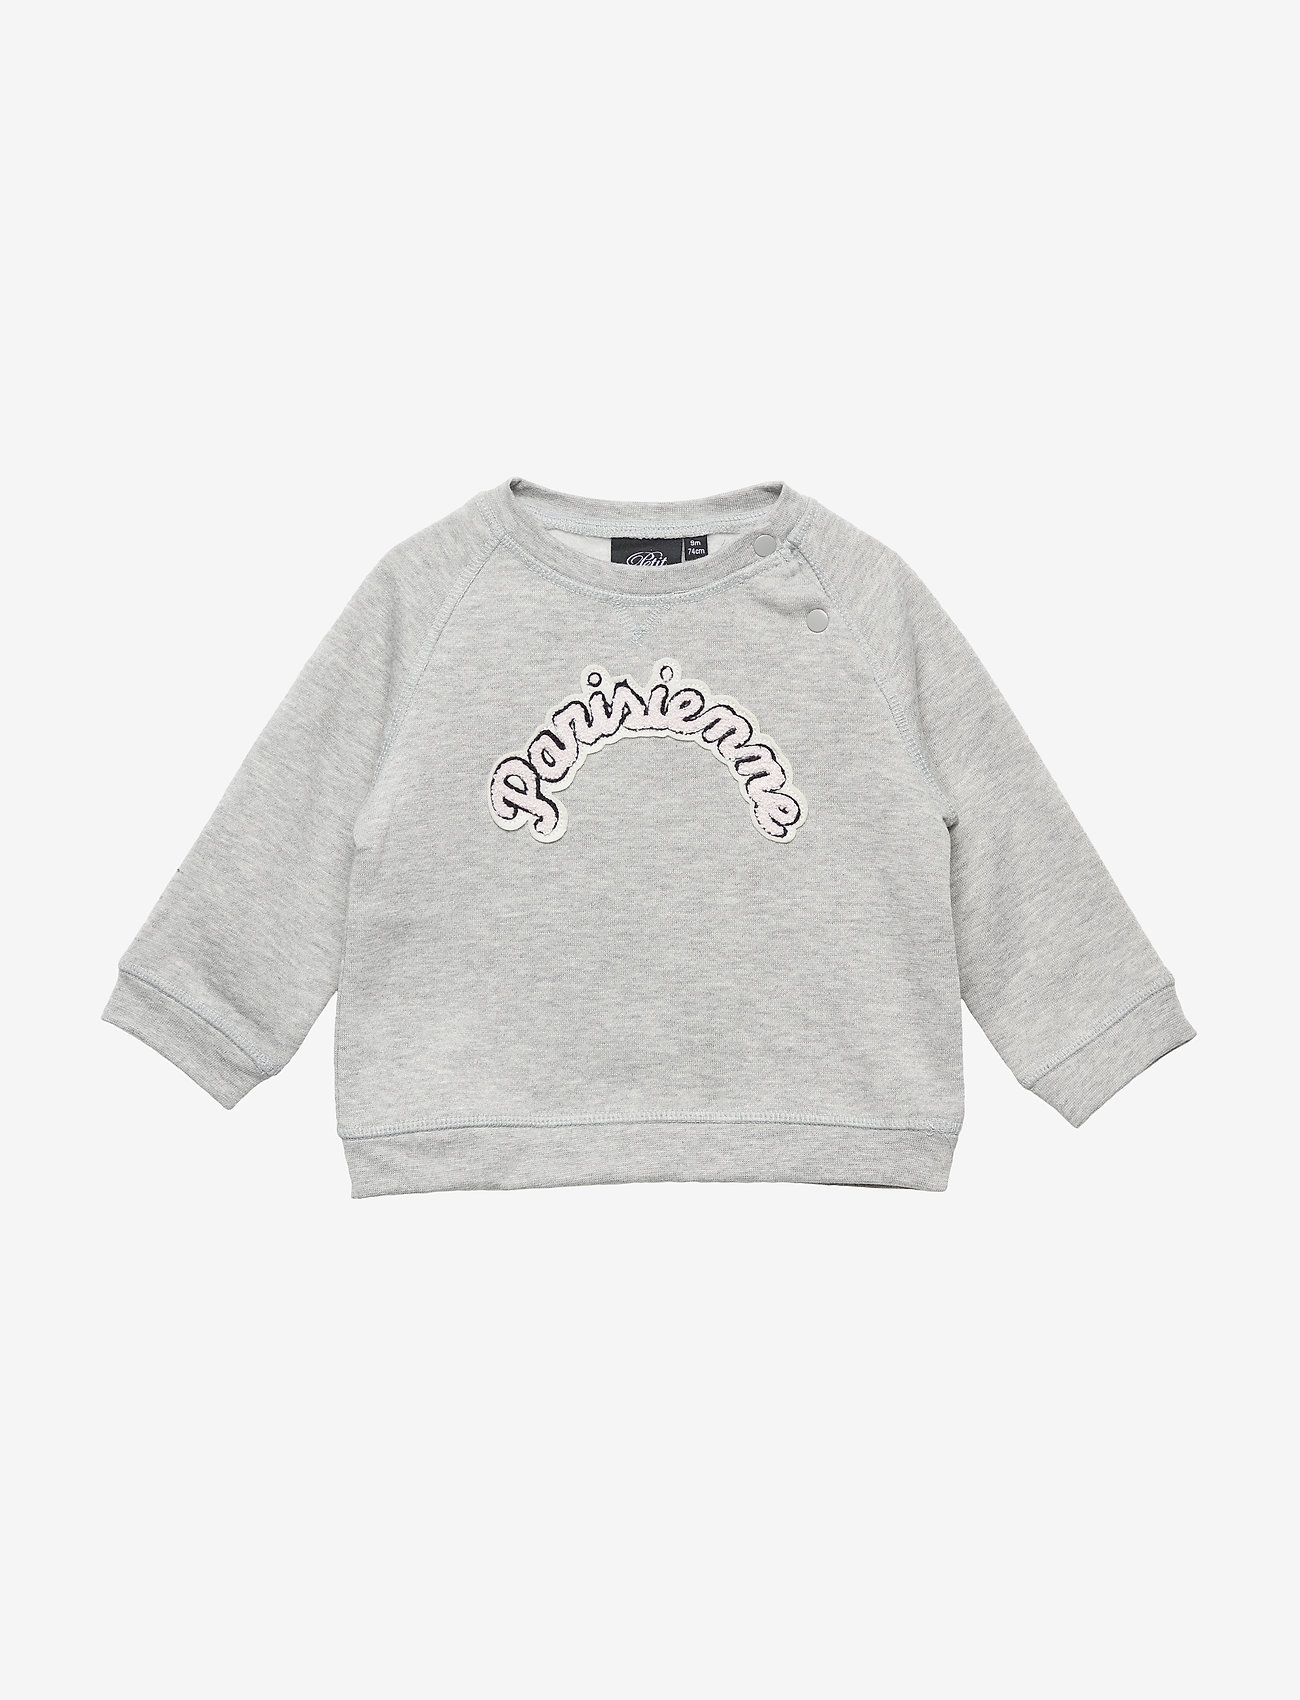 Petit by Sofie Schnoor - Sweat - sweatshirts - grey - 0